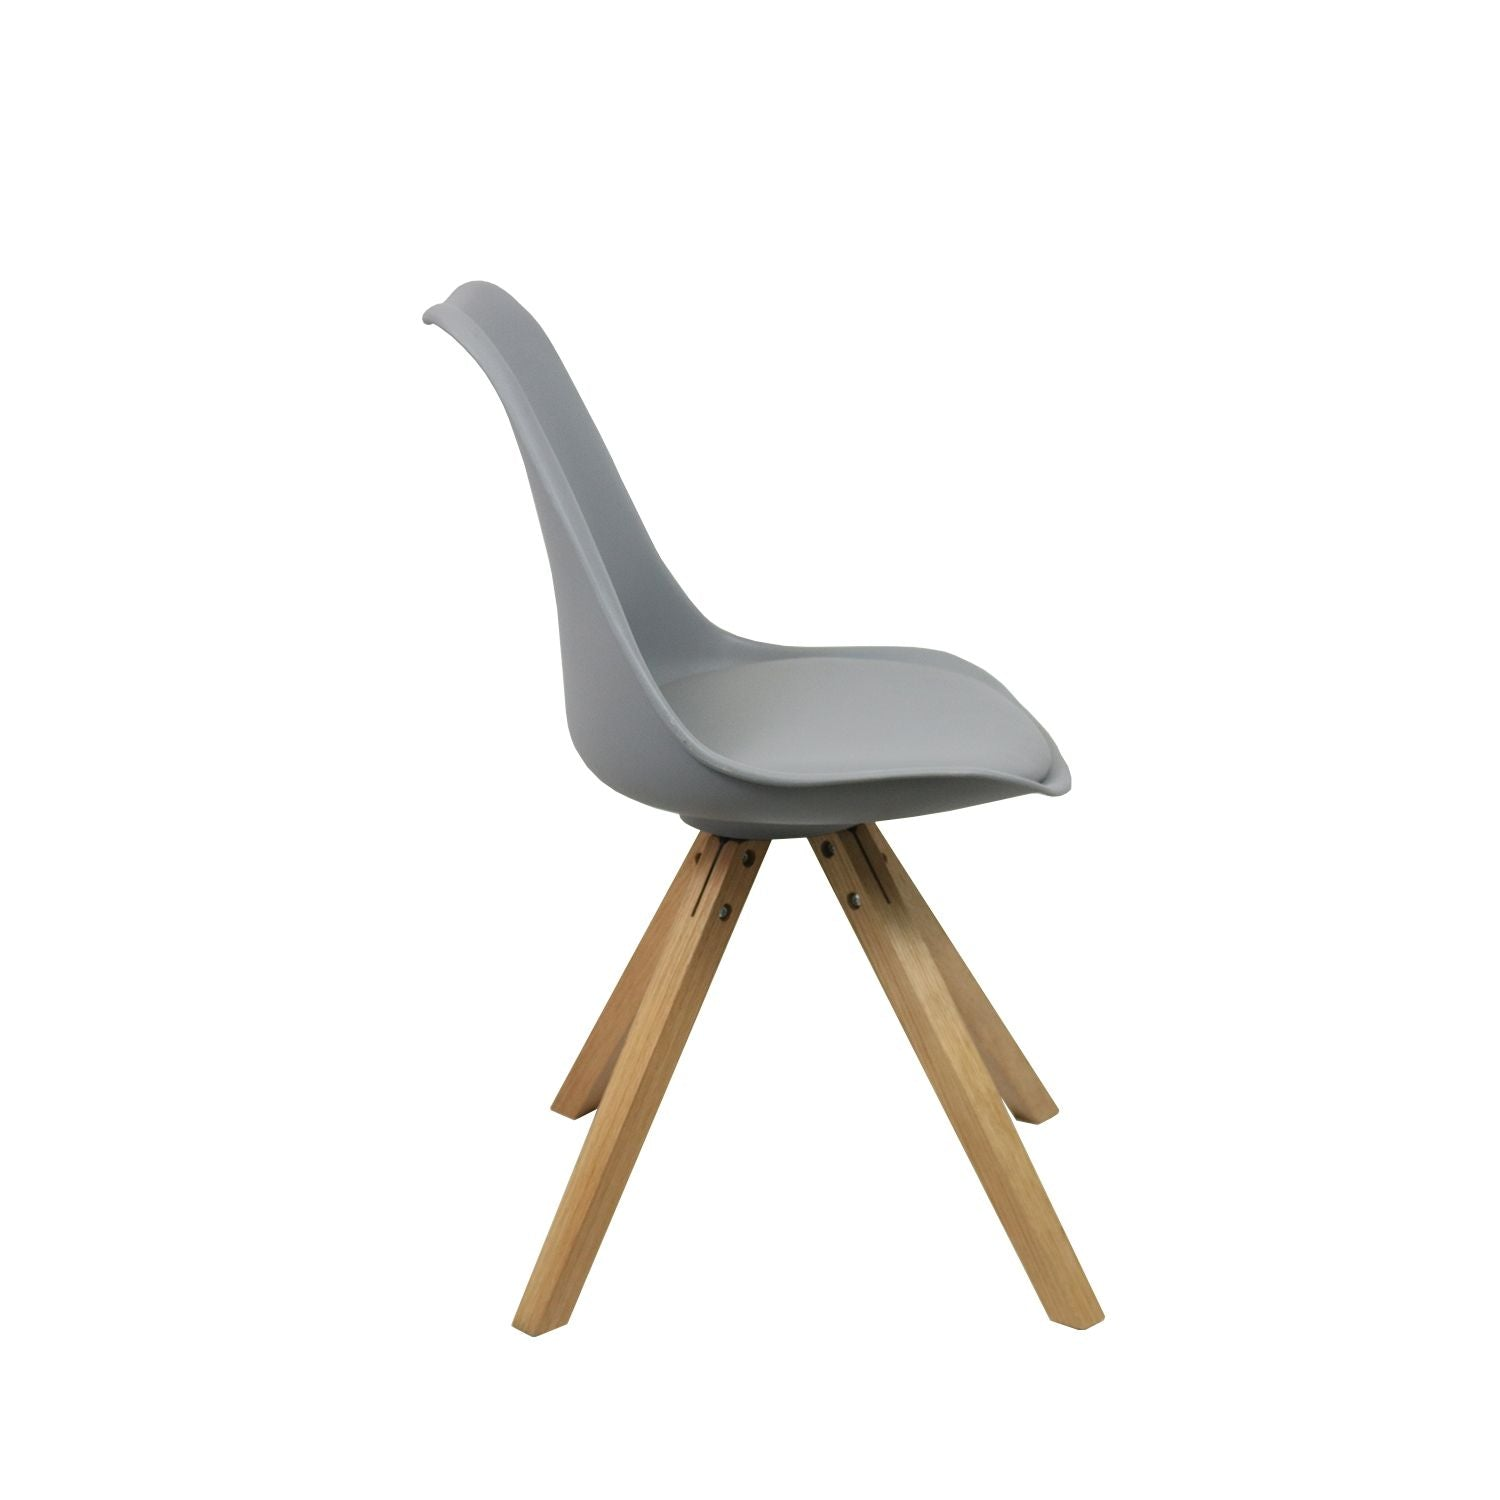 DINING CHAIR LUUK - GREY